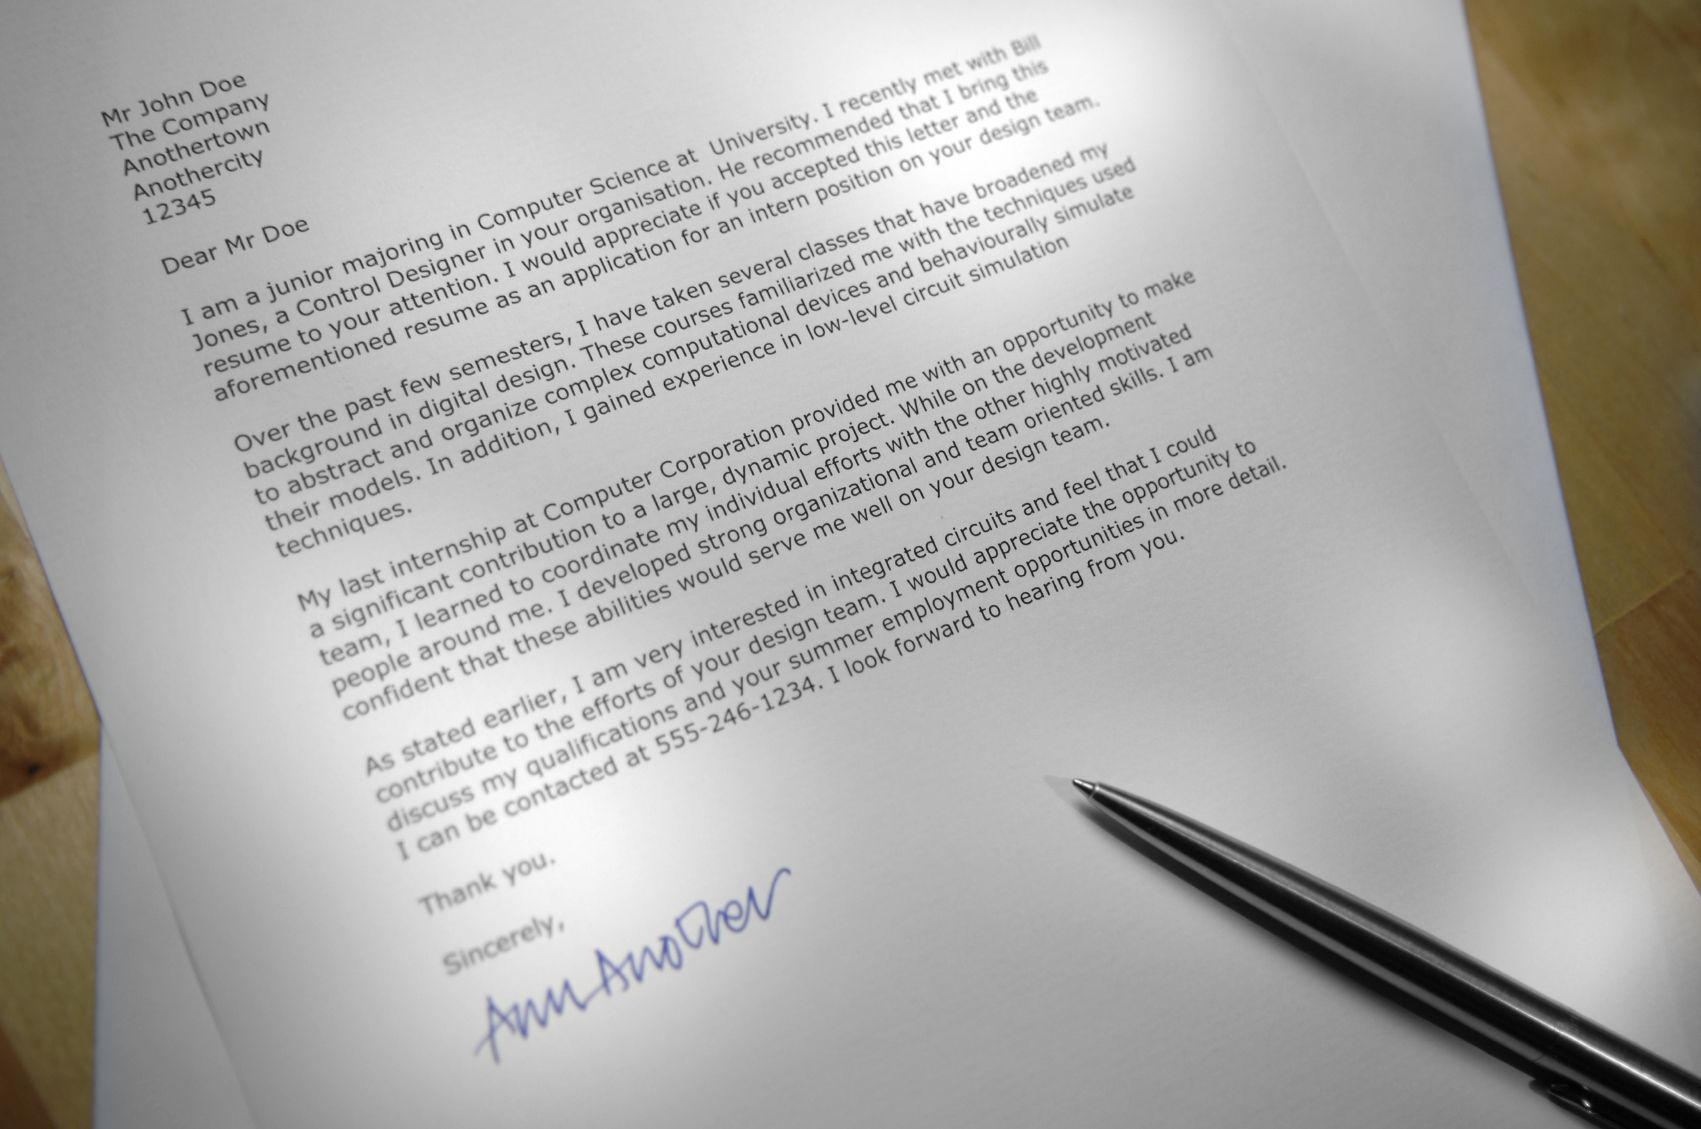 Do I need a cover letter? - Yes, yes you do.